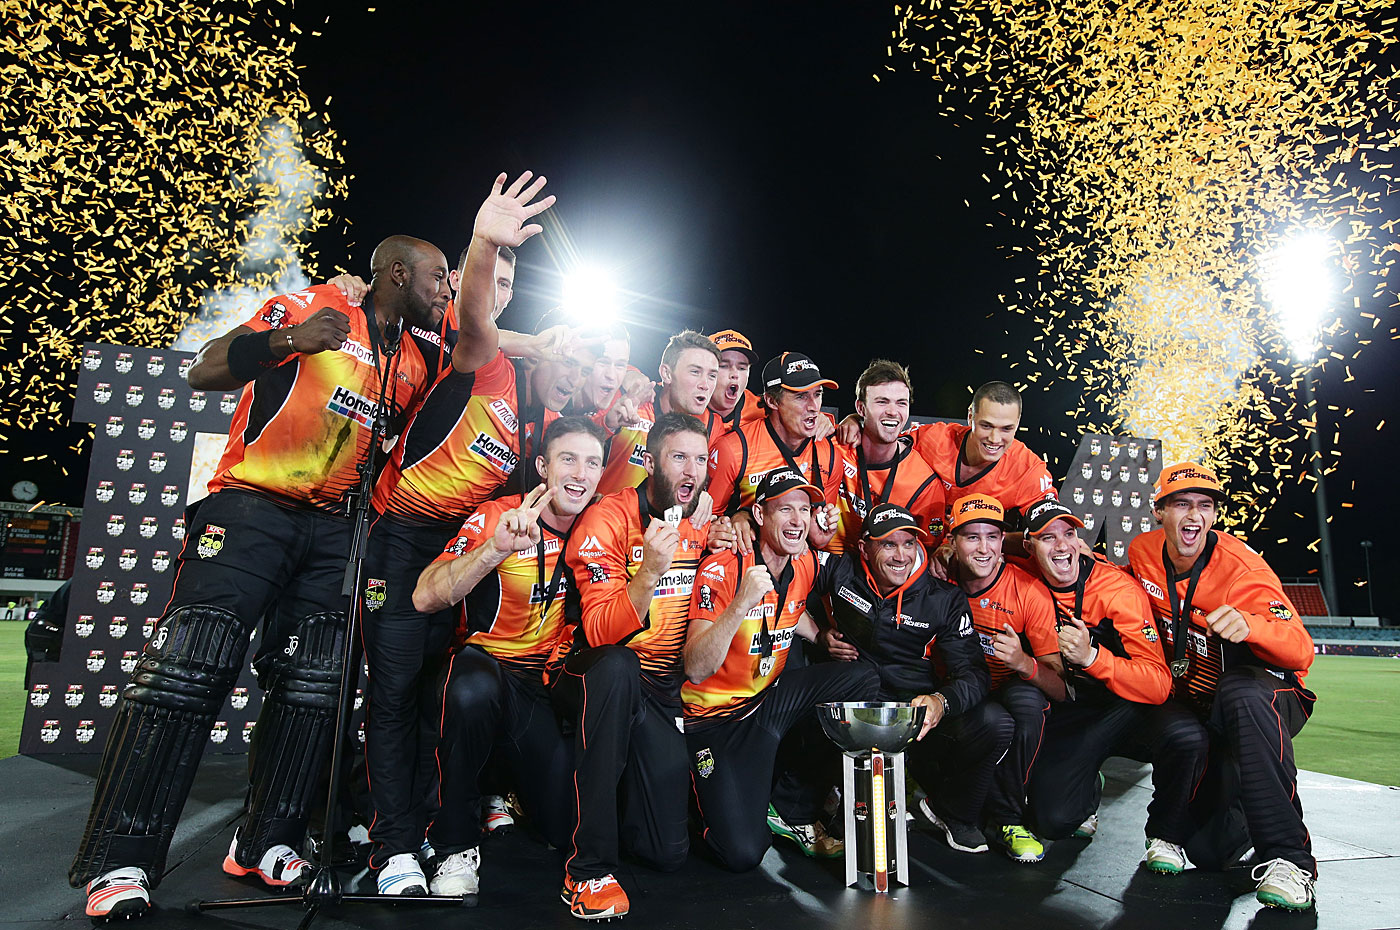 The BBL, like other T20 leagues, has been a marketing man's dream, offering the